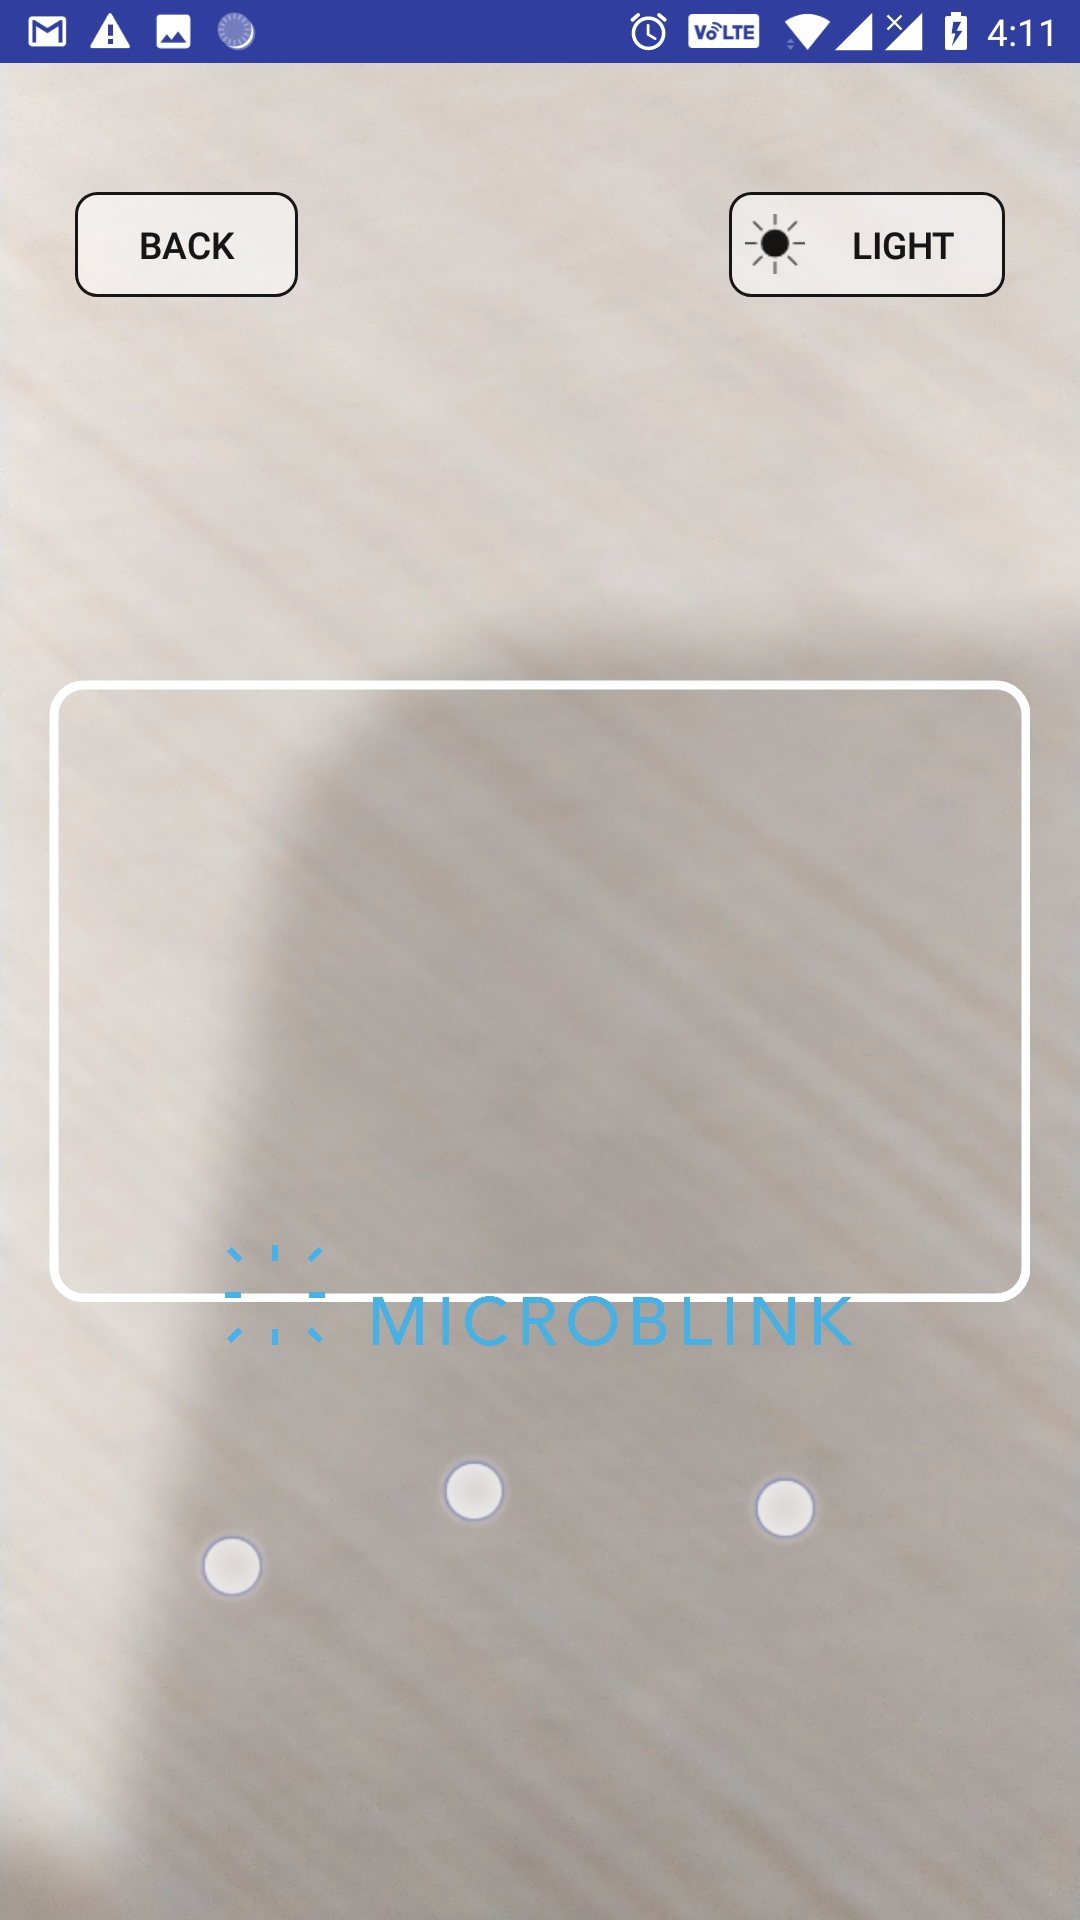 Remove brand name of Blink Id in Android application · Issue